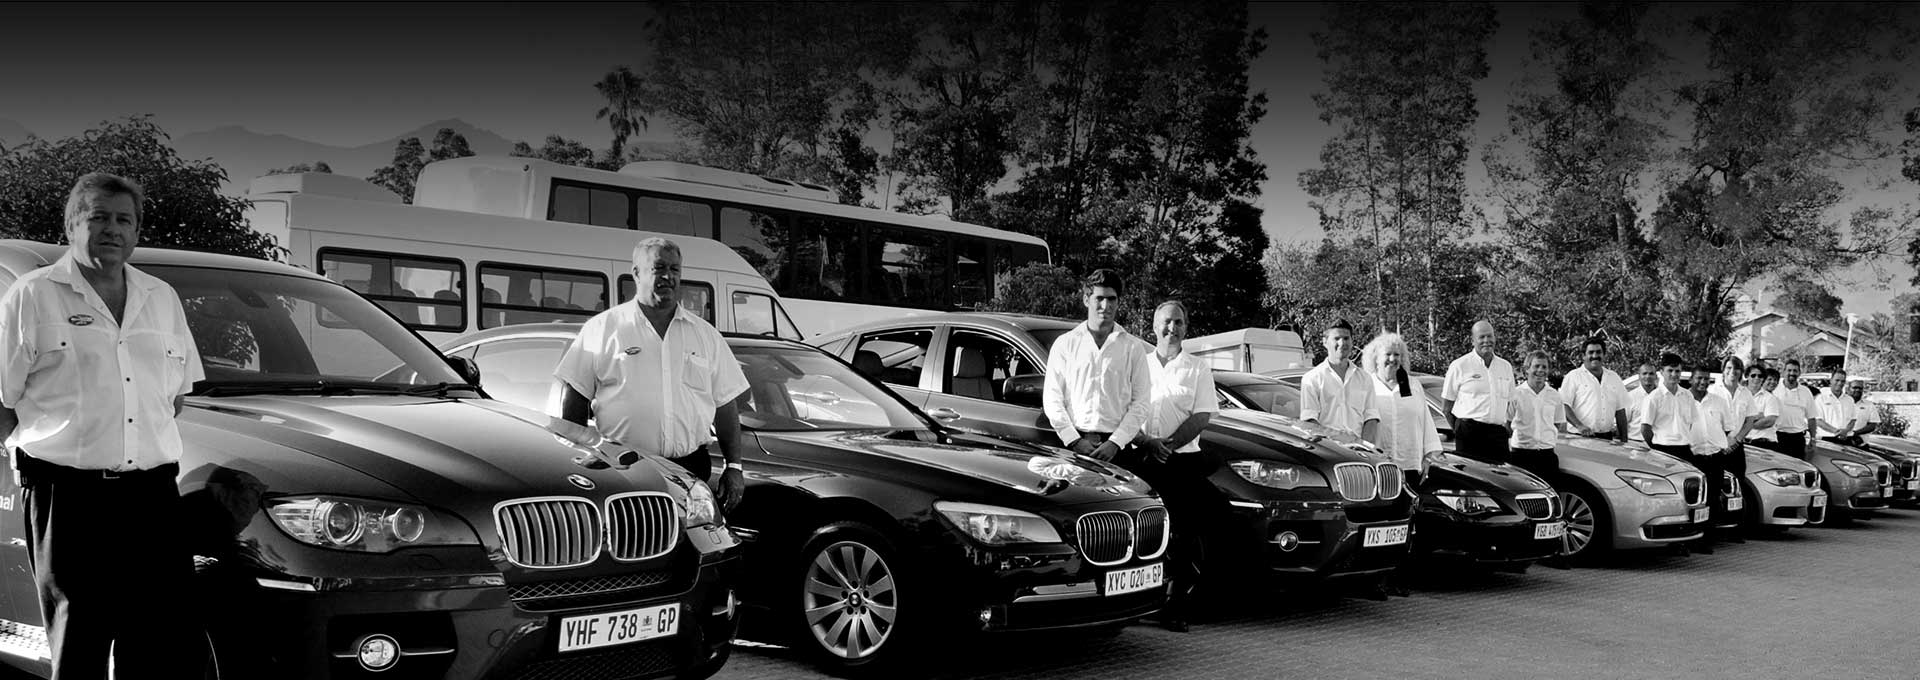 Drivers posing with their BMW's at Fancourt during the BMW Golf Cup International World Final